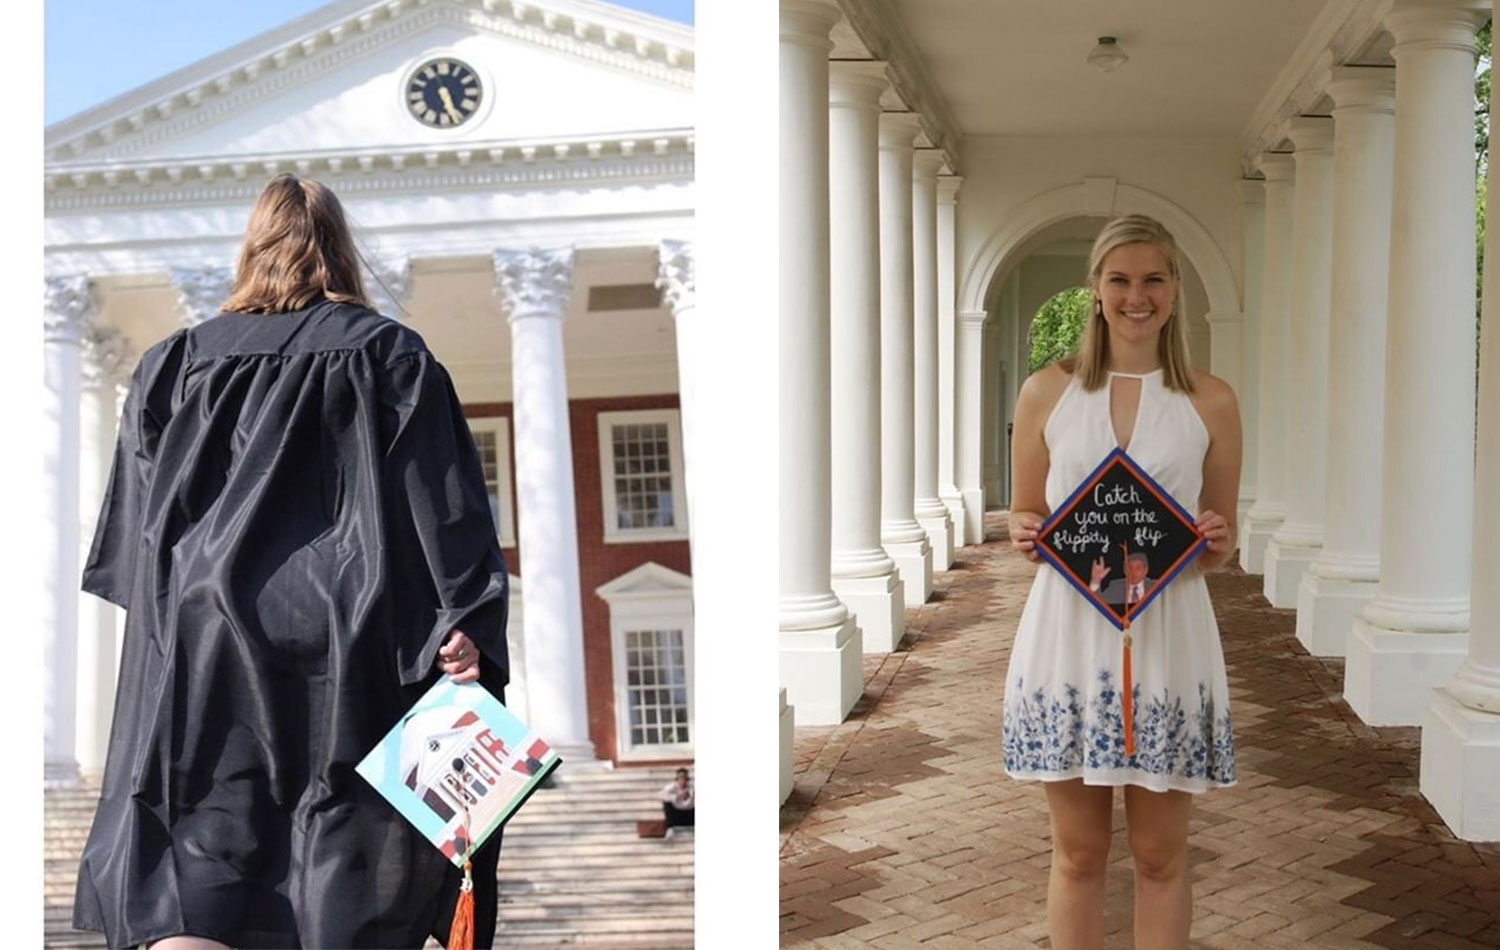 Alex Greif used her cap to show off her favorite place on Grounds, while Hannah Kohl paid tribute to her favorite TV show.